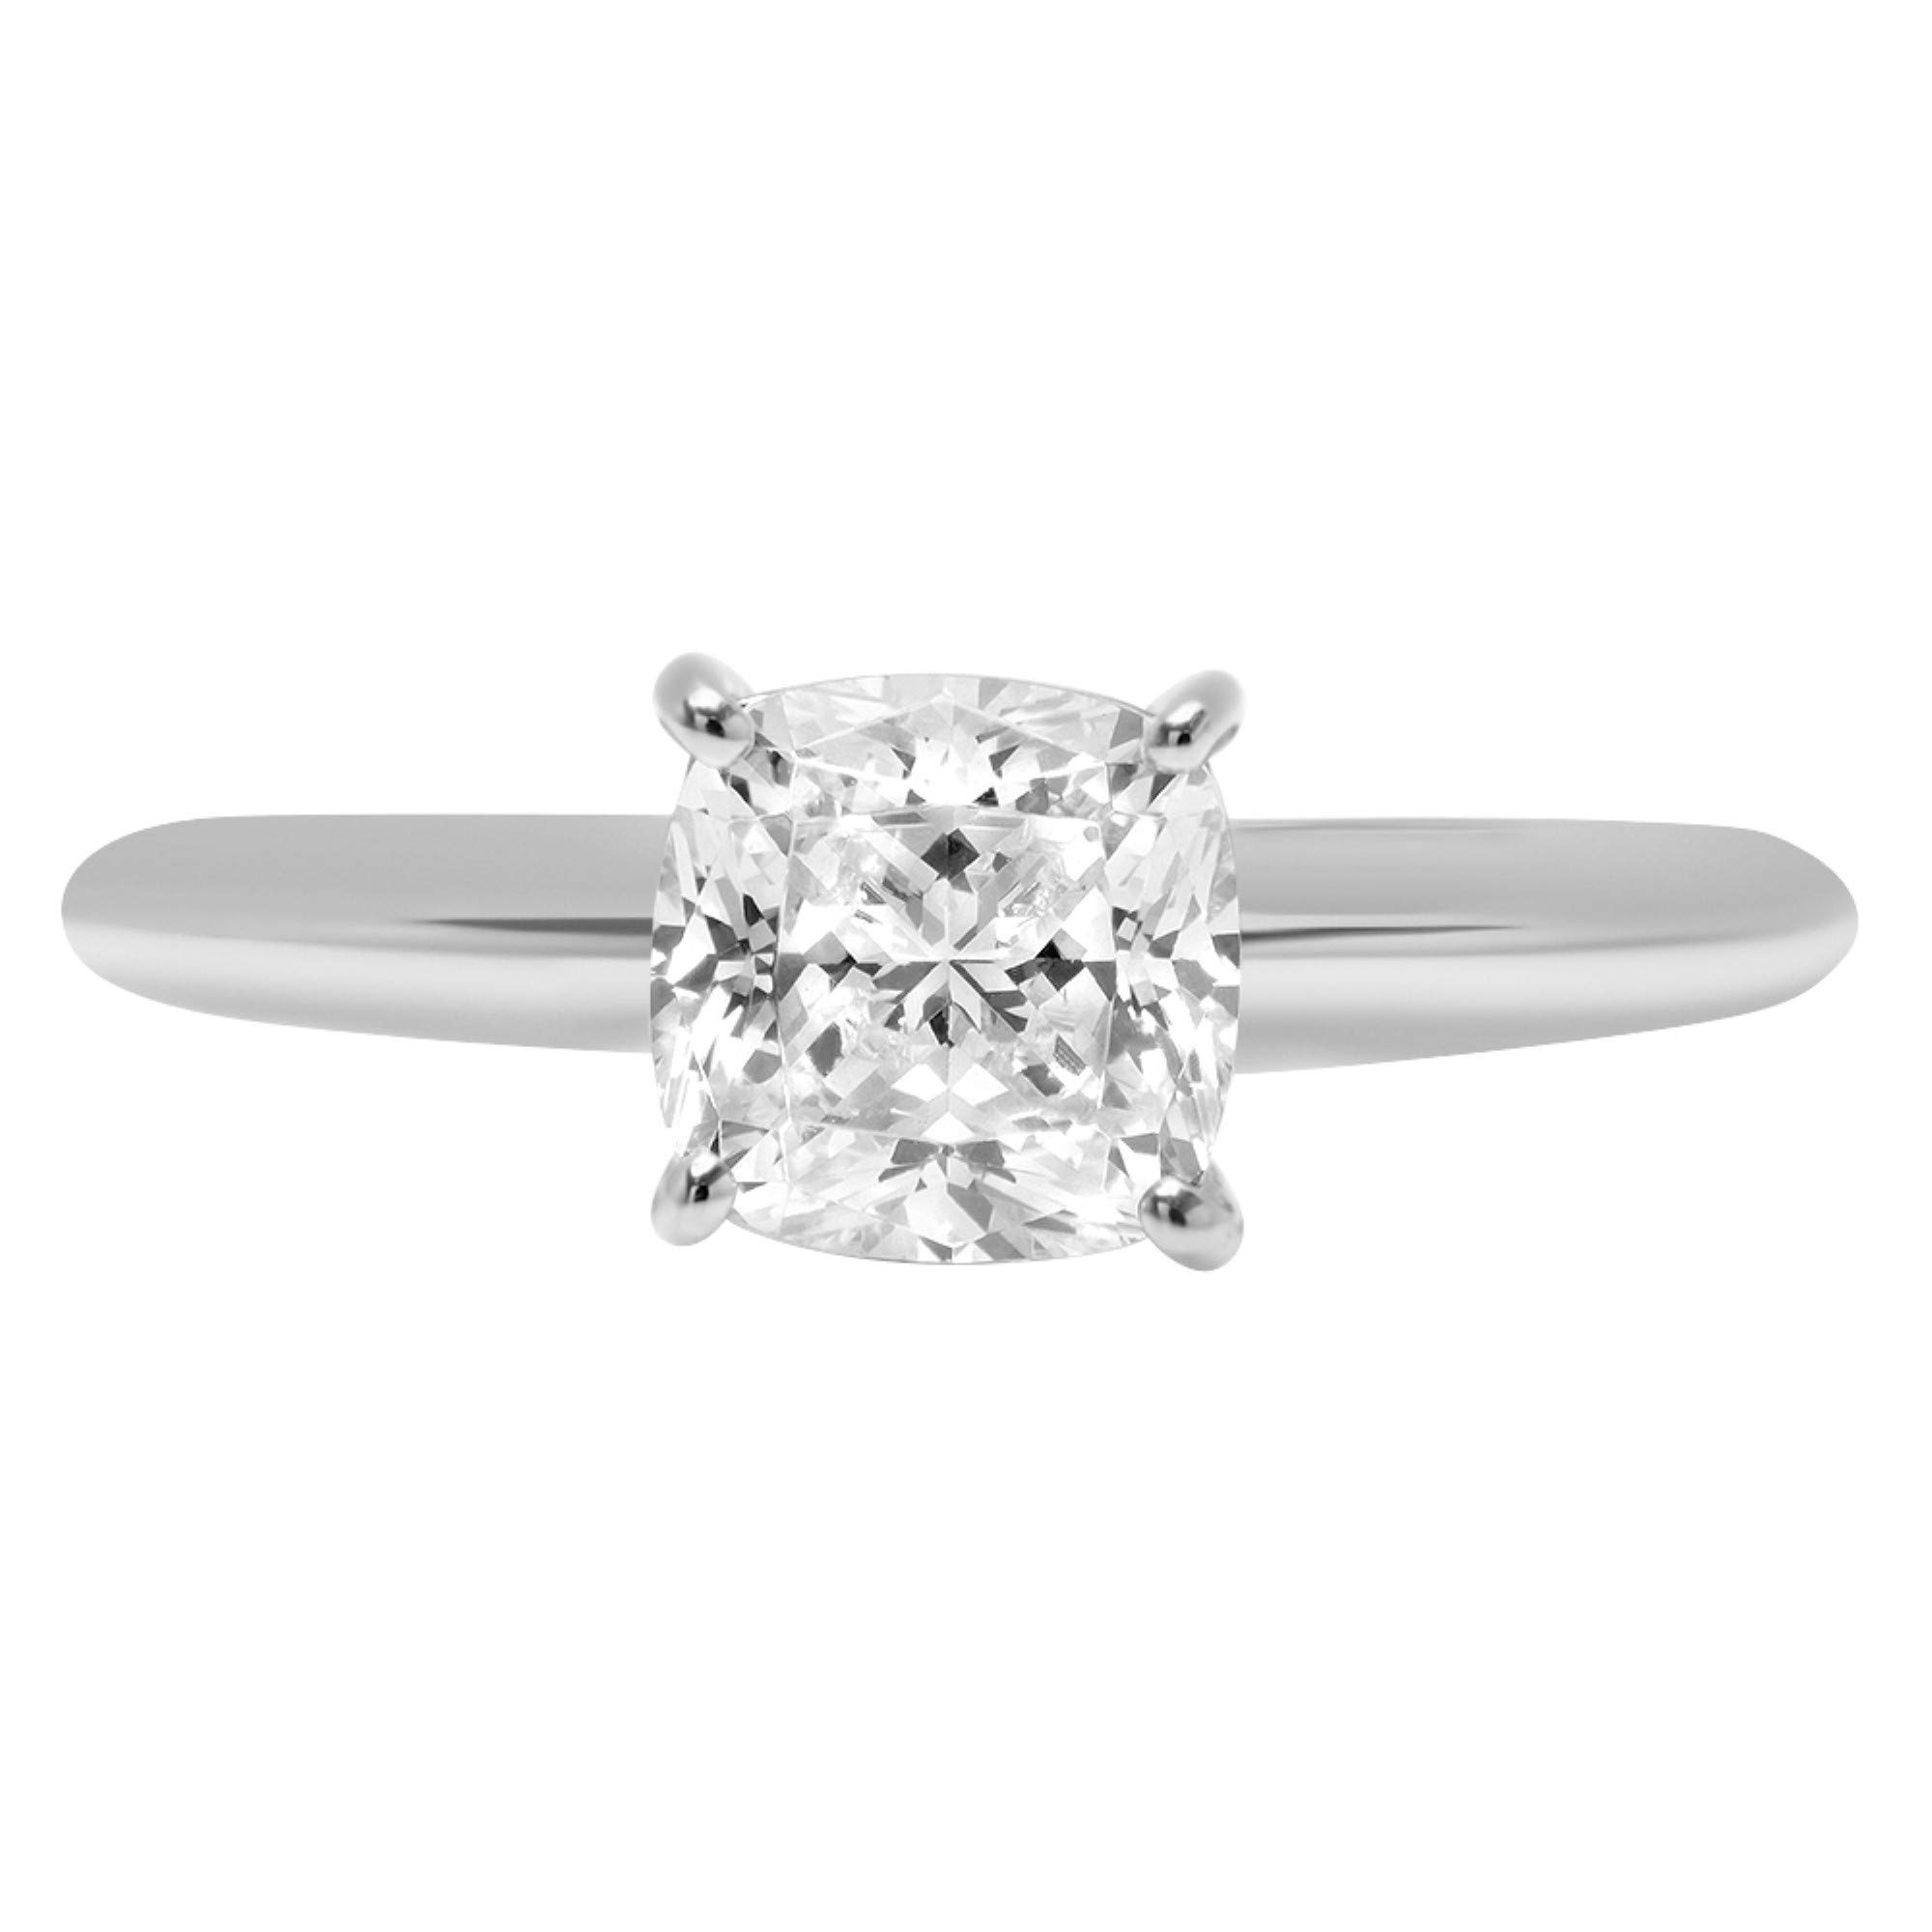 0.95ct Brilliant Cushion Cut Solitaire Highest Quality Lab Created White Sapphire Ideal VVS1 D 4-Prong Classic Designer Statement Ring Solid Real 14k White Gold for Women